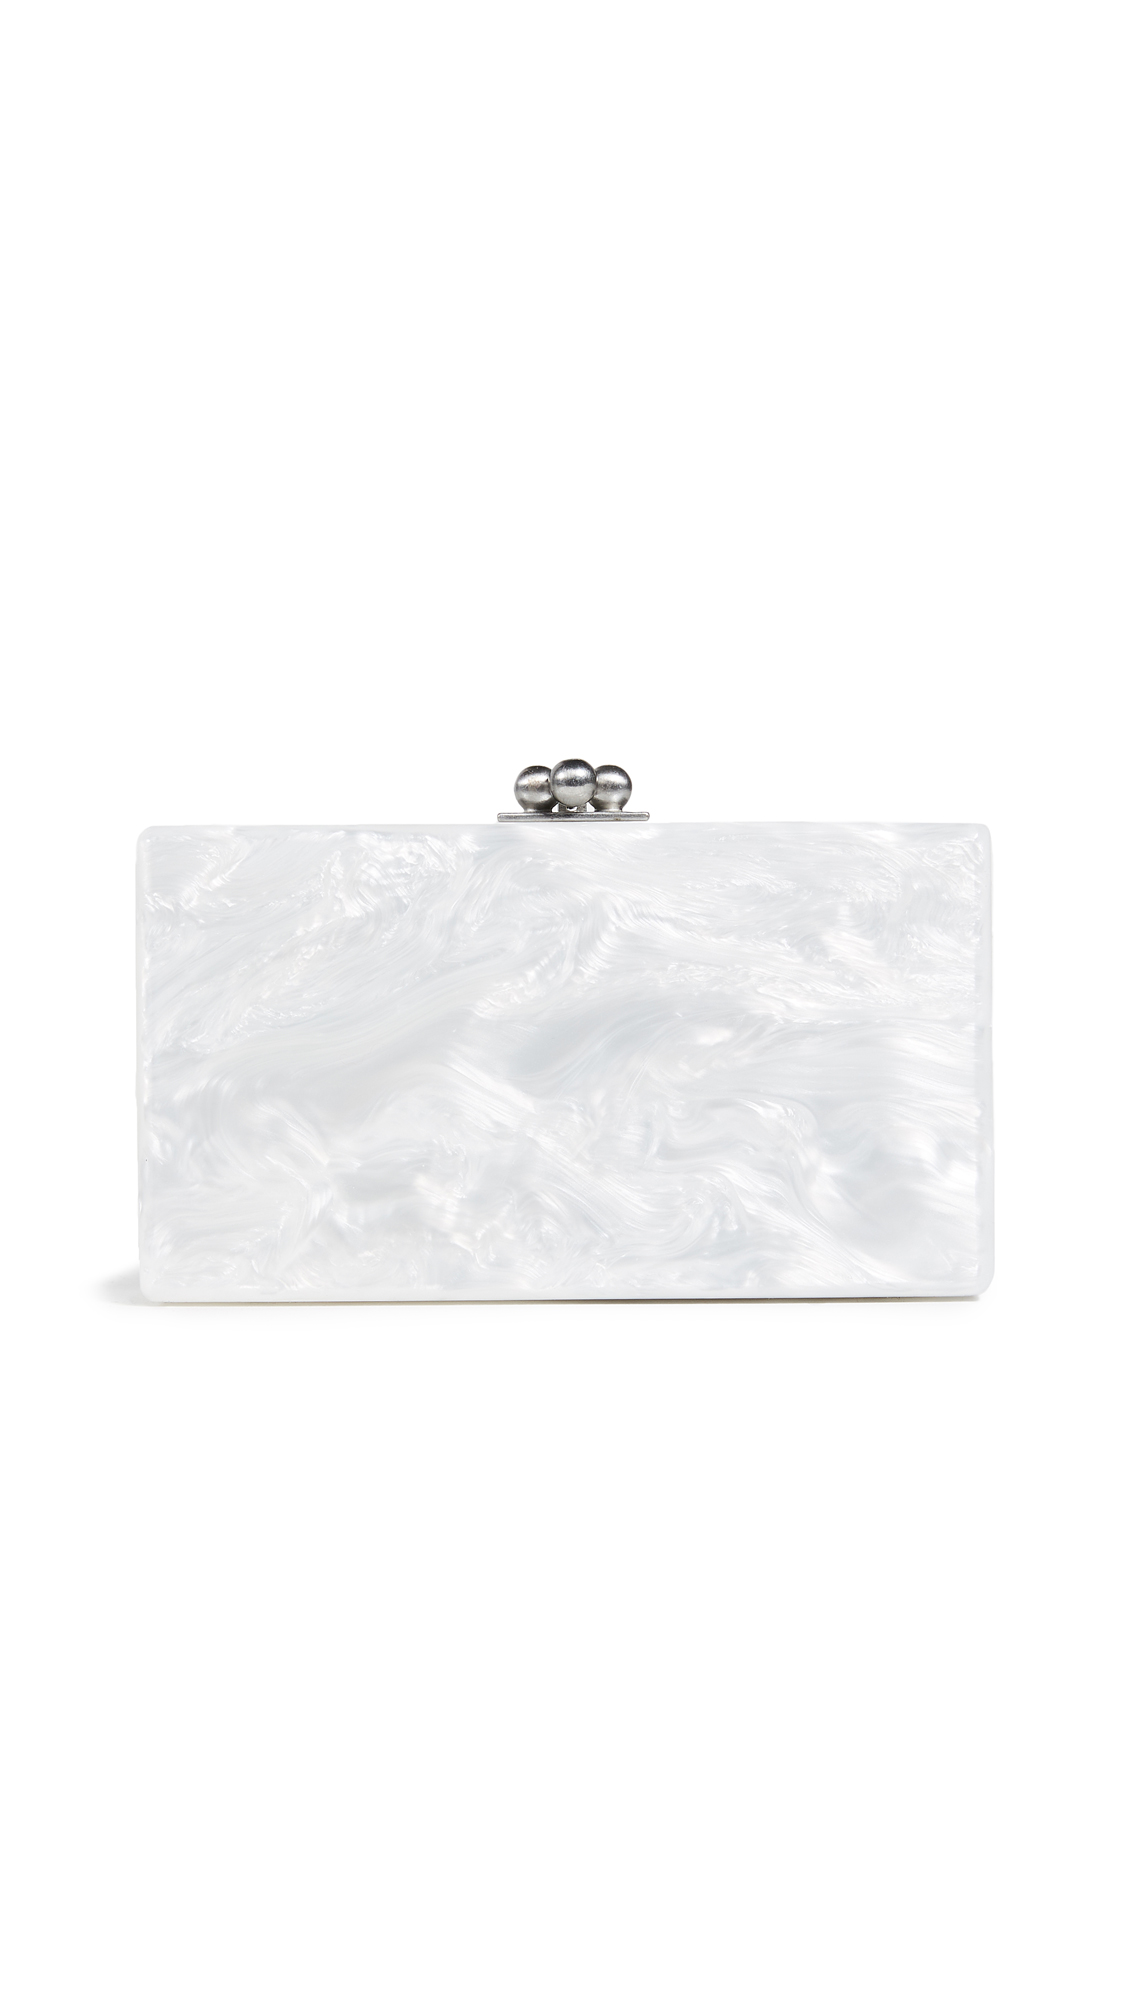 Edie Parker Jean Solid Clutch - White Pearlescent